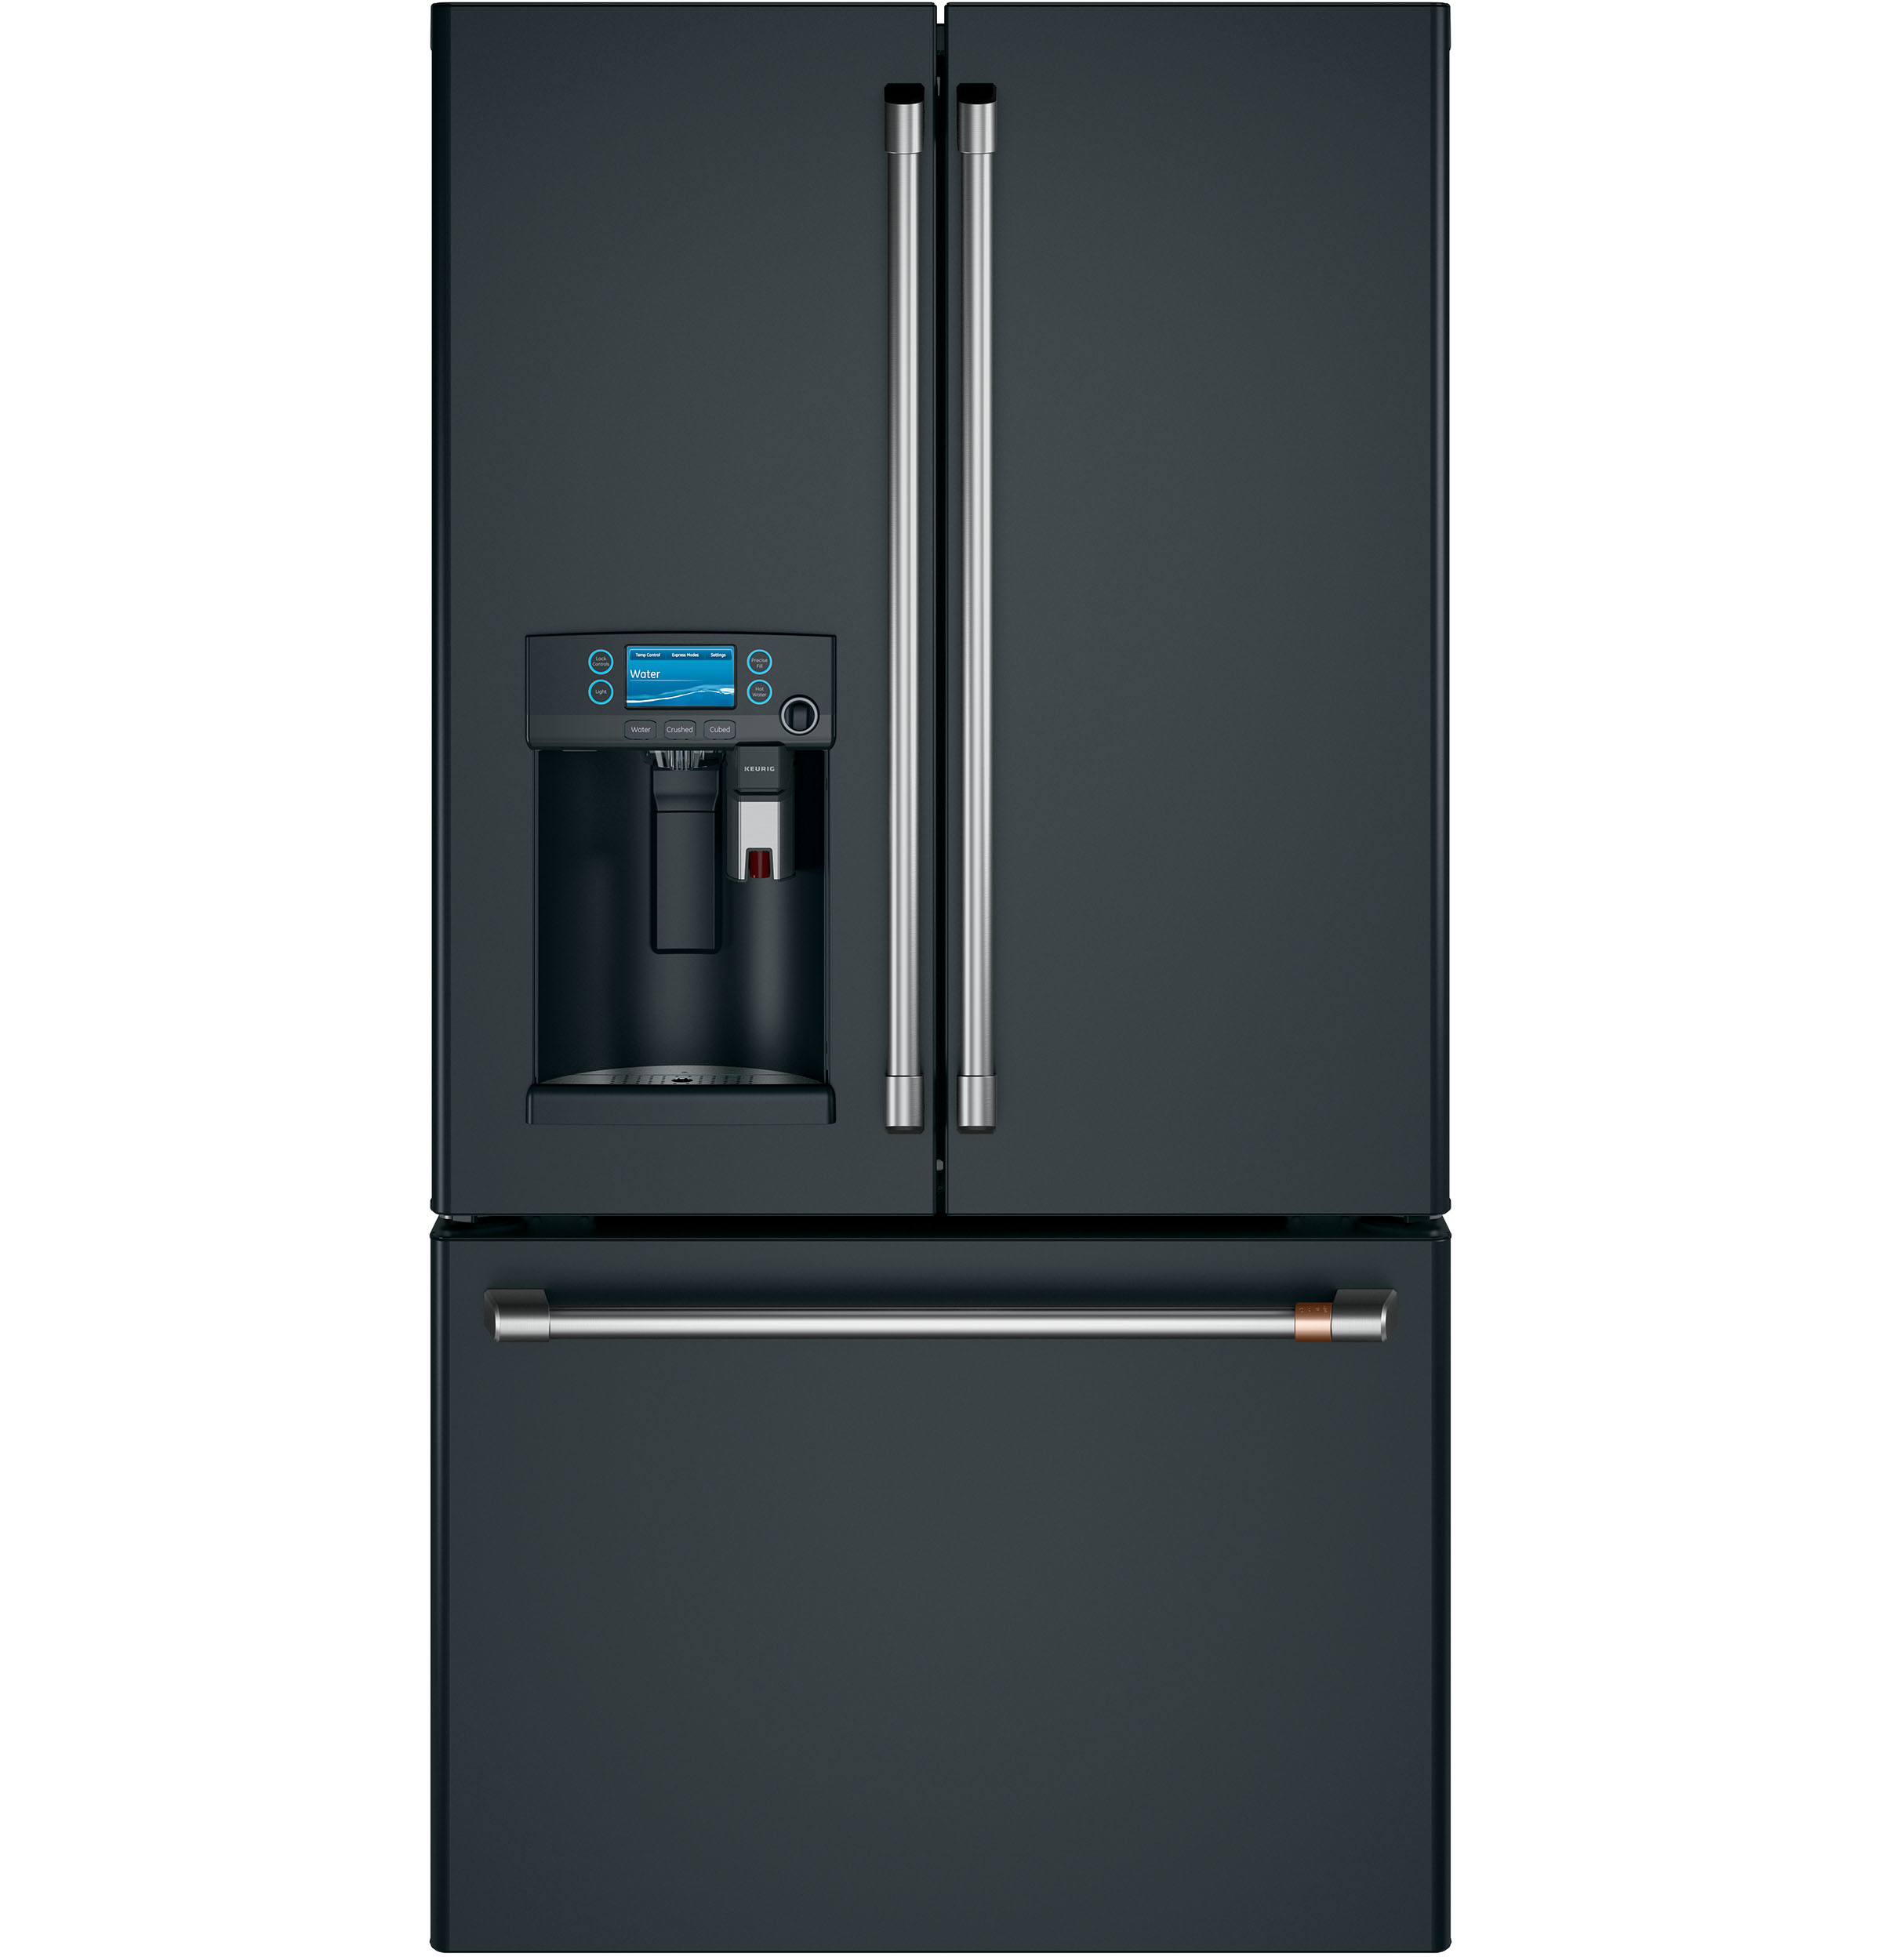 Cafe Café™ ENERGY STAR® 22.1 Cu. Ft. Counter-Depth French-Door Refrigerator with Keurig® K-Cup® Brewing System